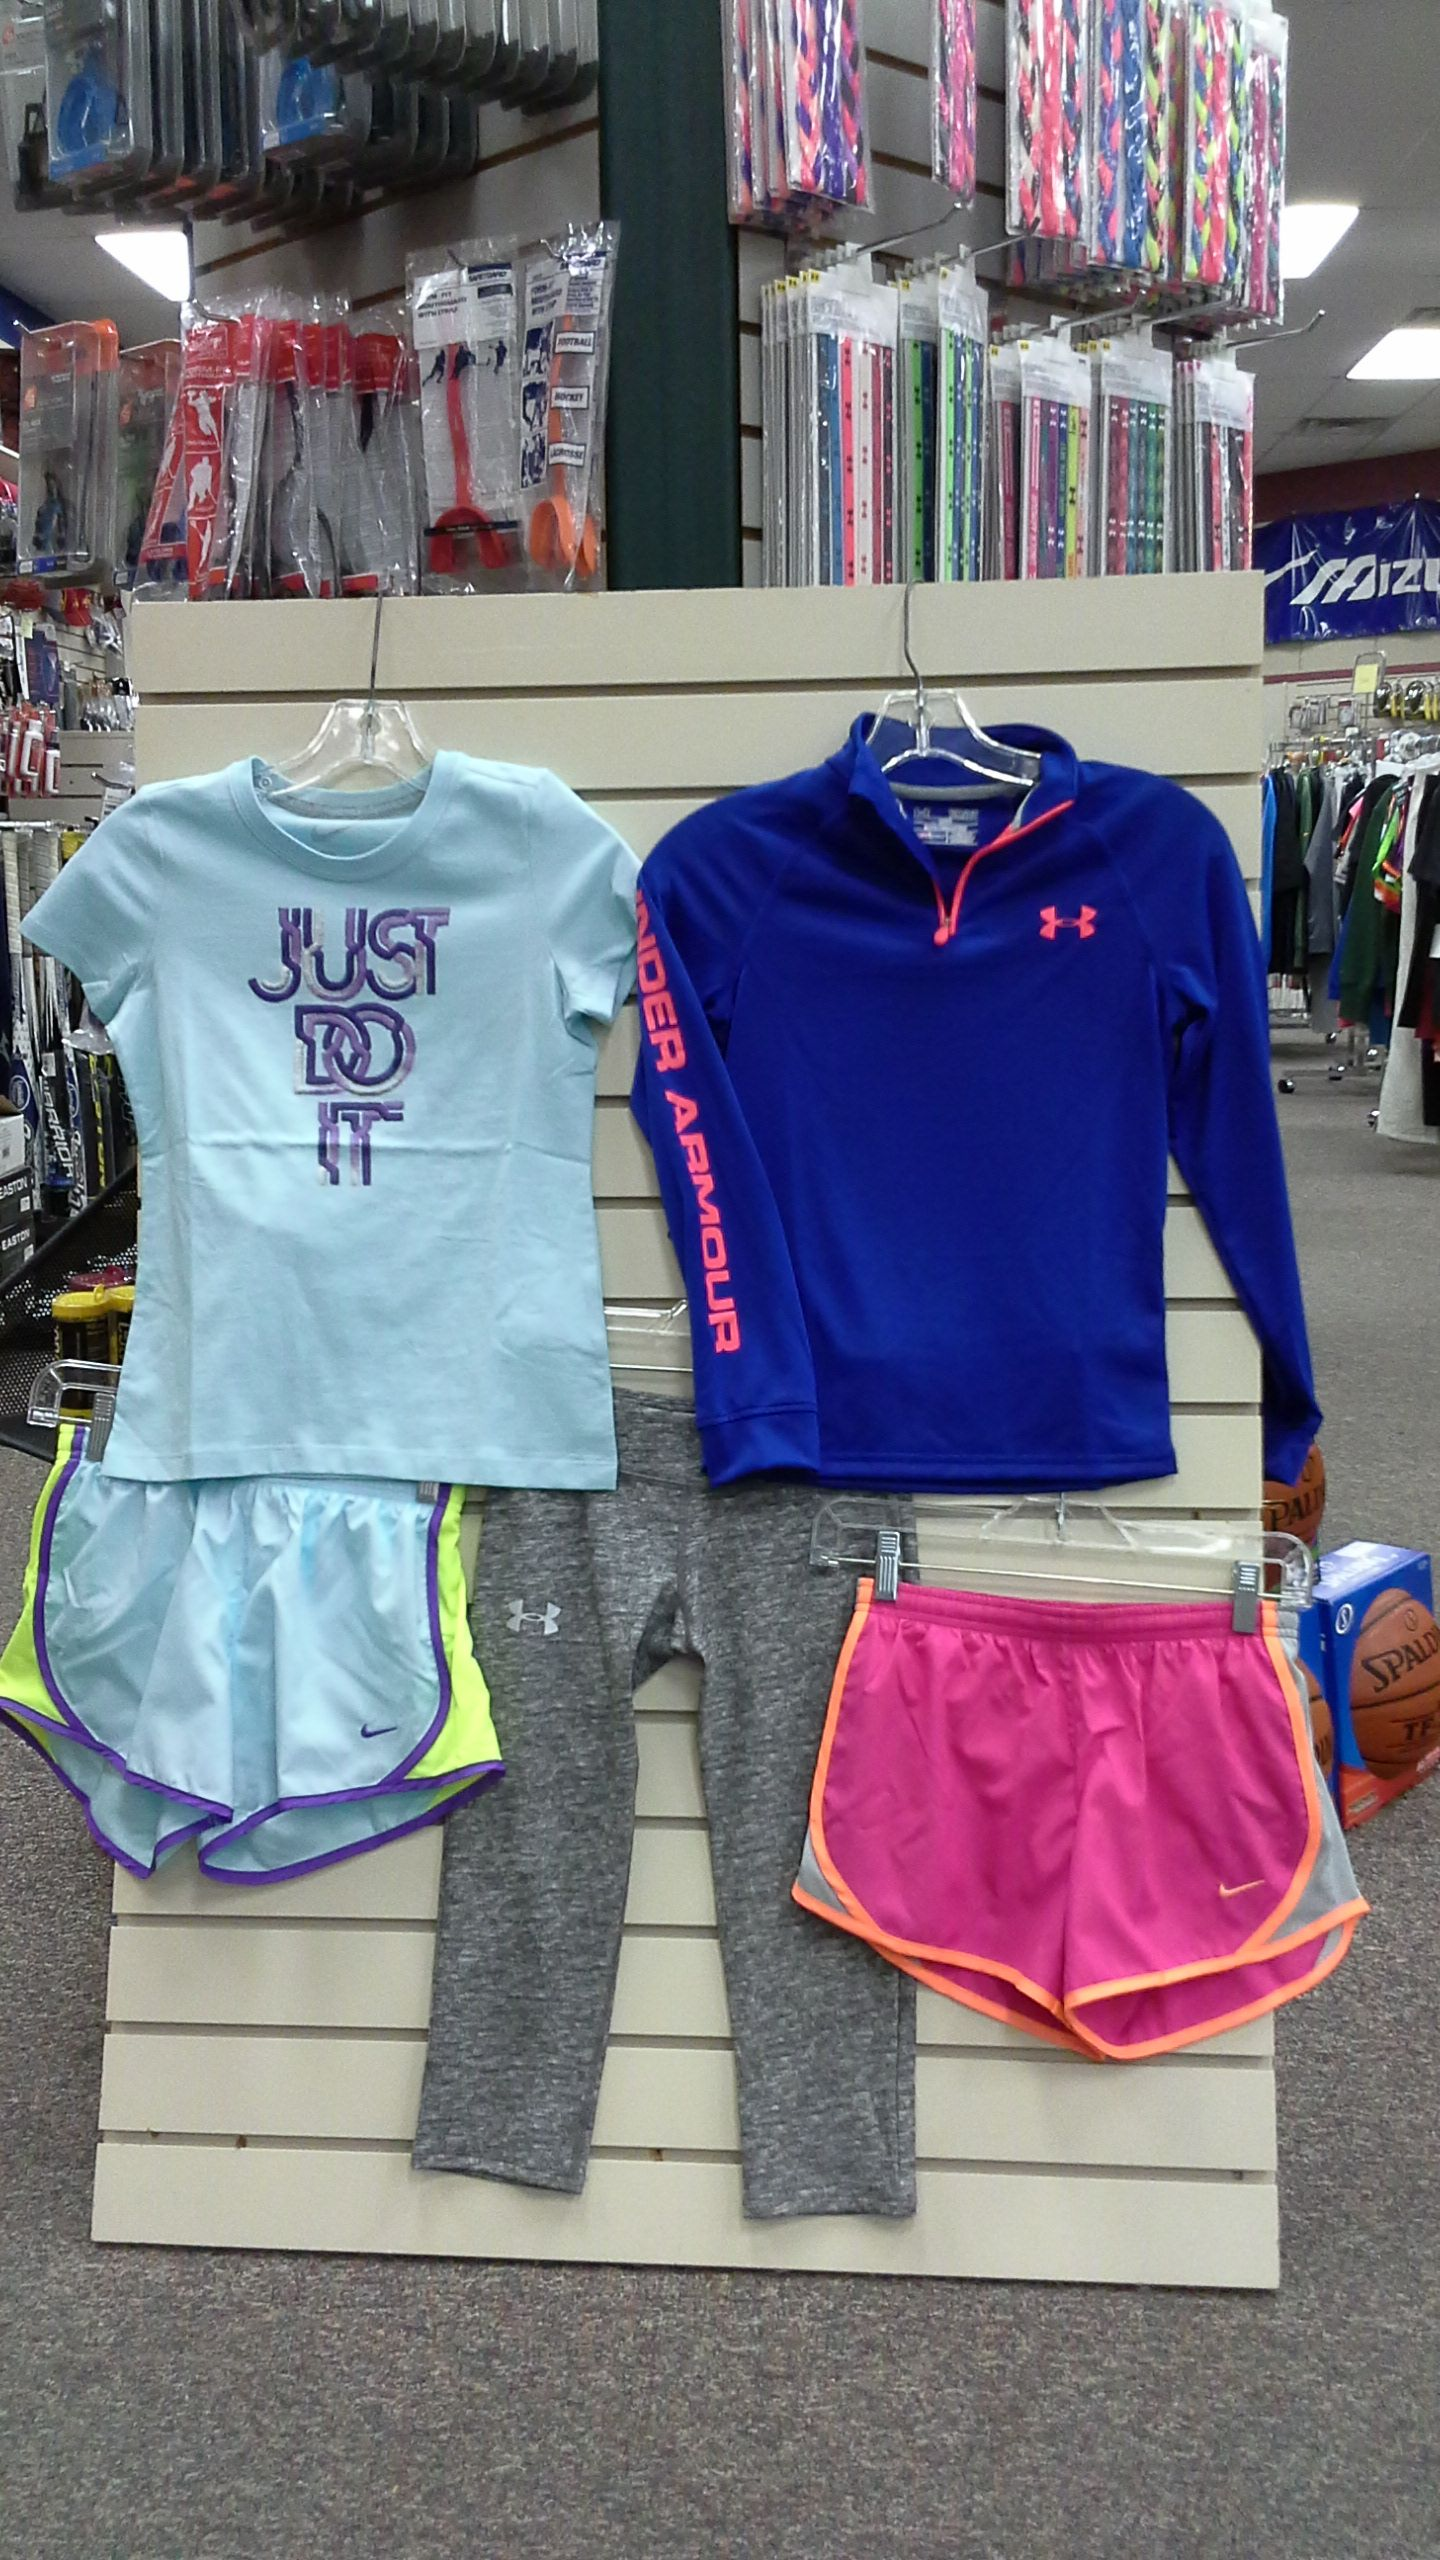 Pin By Center Sports On Kids Apparel Footwear Girls Nike Shorts Clothes Sport Outfits